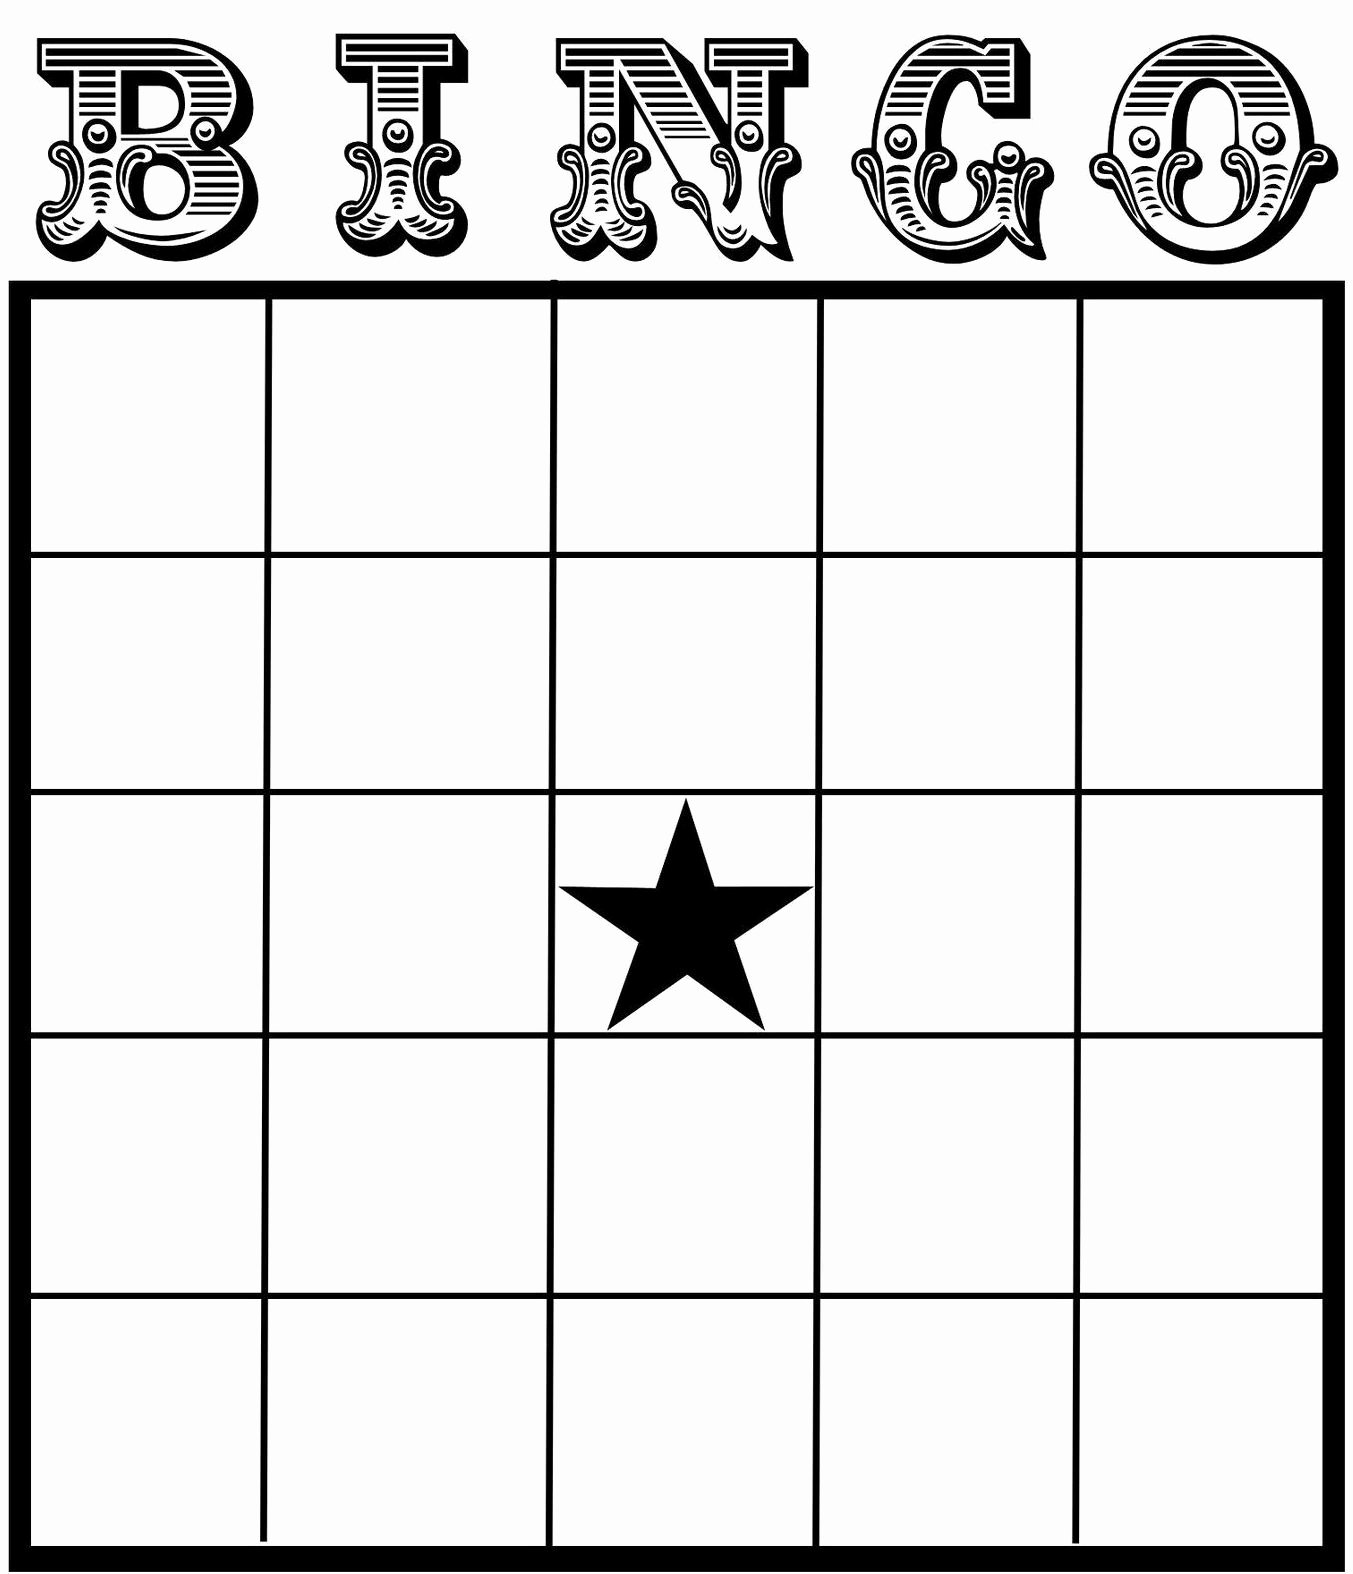 Blank Printable Bingo Cards Luxury Free Printable Bingo Card Template Set Your Plan & Tasks